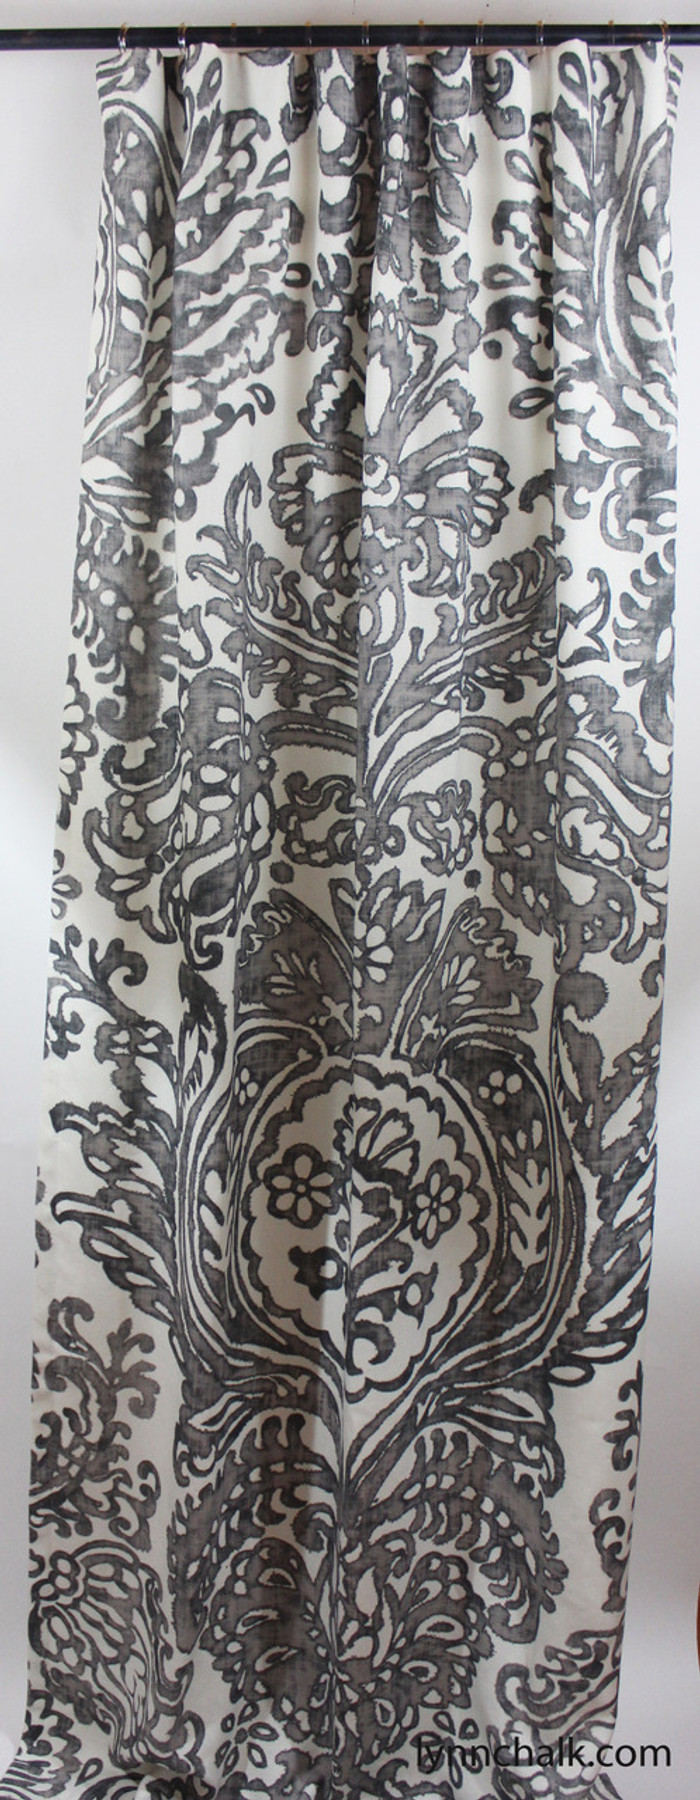 Custom Drapes by Lynn Chalk in Schumacher Tremezzo Damask in Graphite